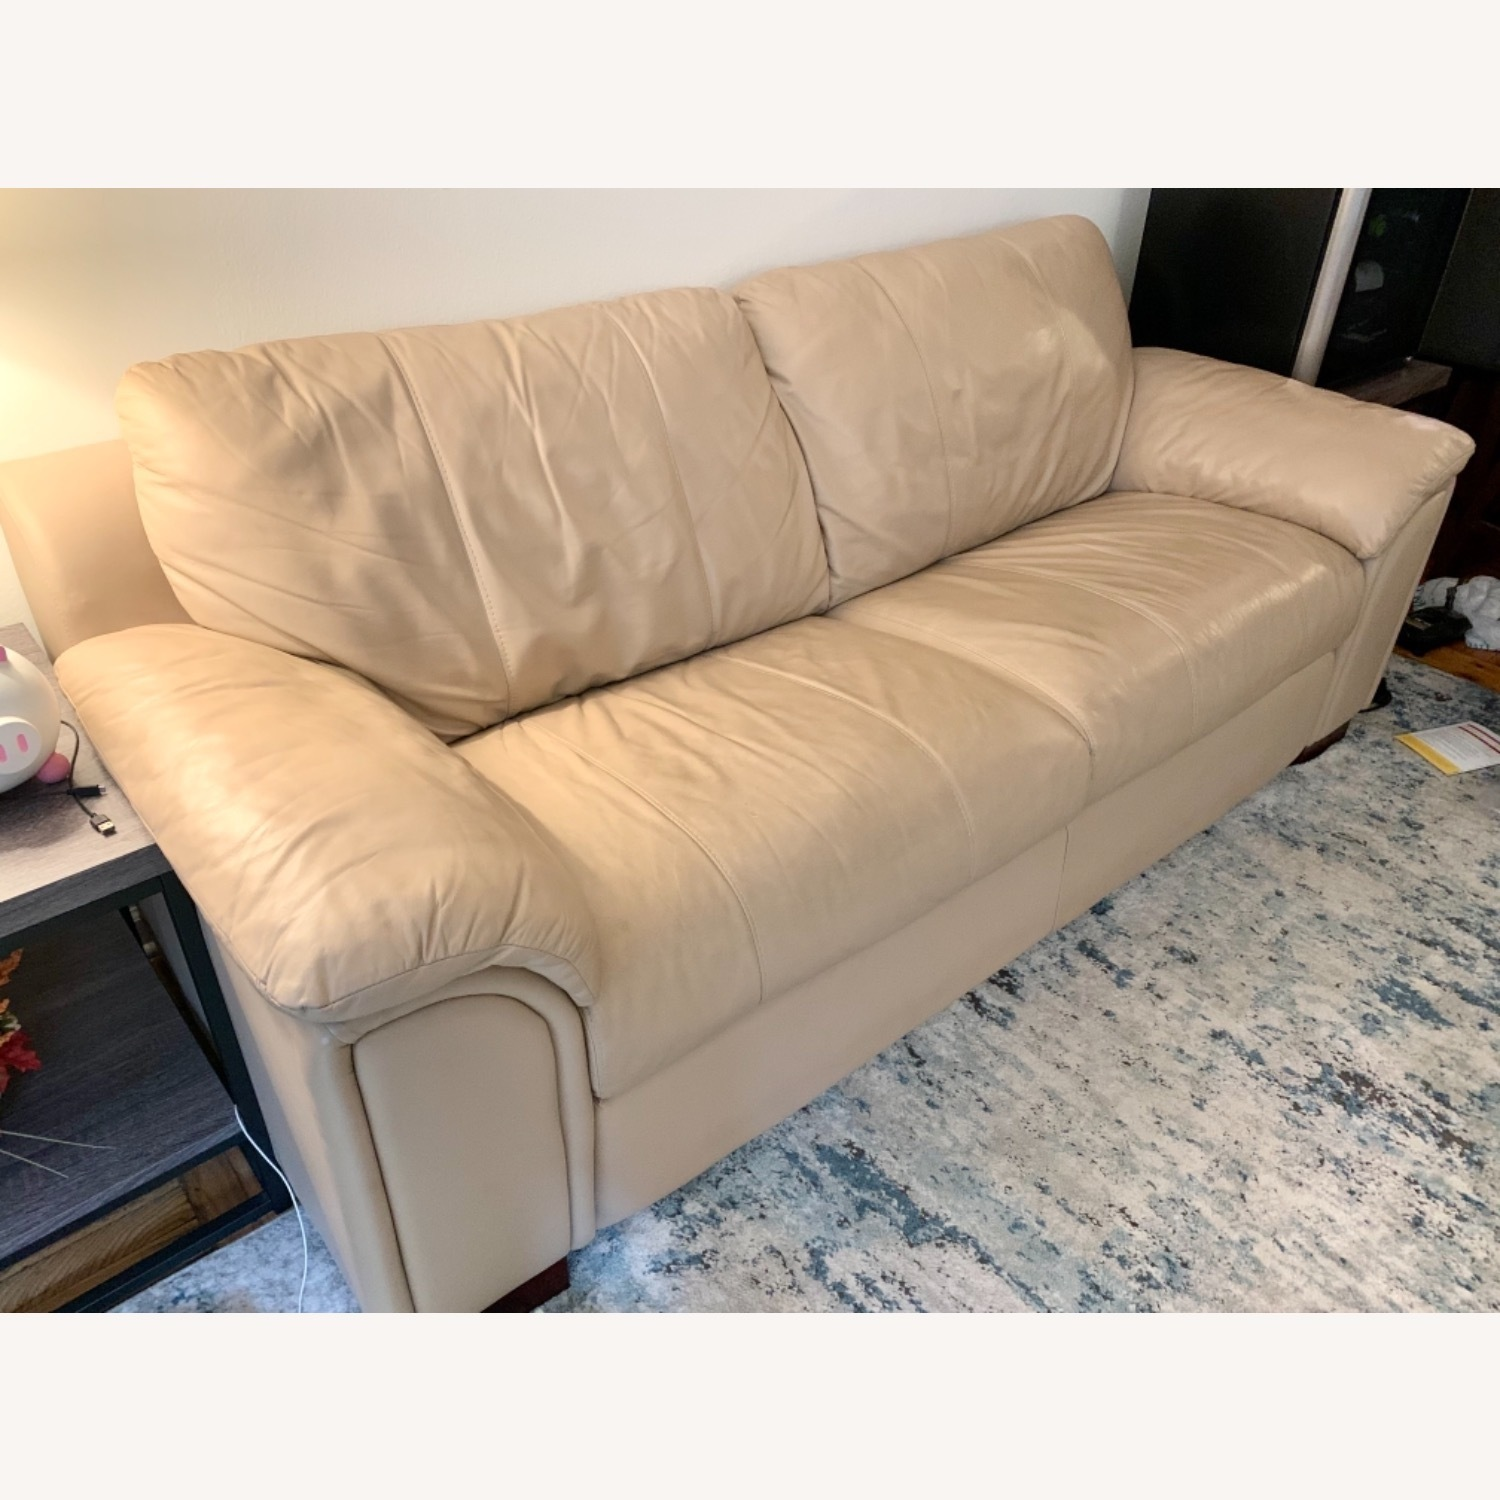 American Leather Pull Out Sleeper Sofa - image-5